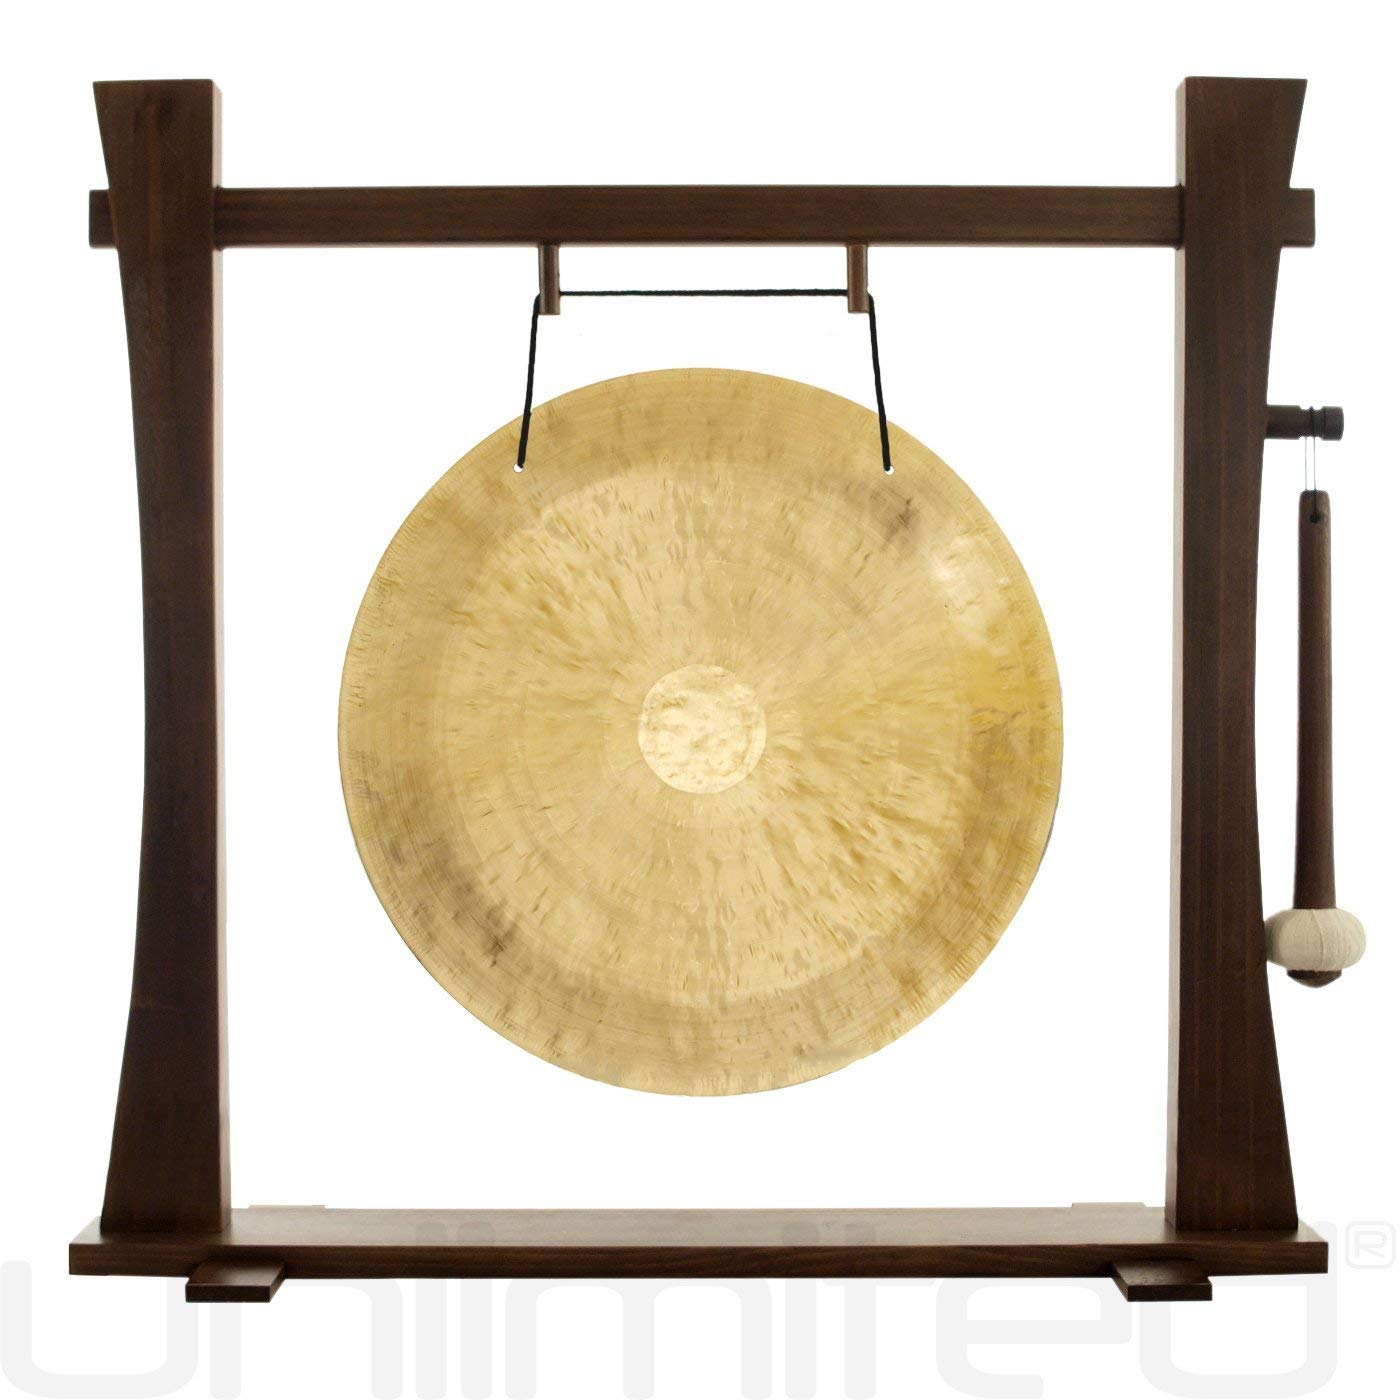 16'' to 18'' Gongs on the Spirit Guide Gong Stand